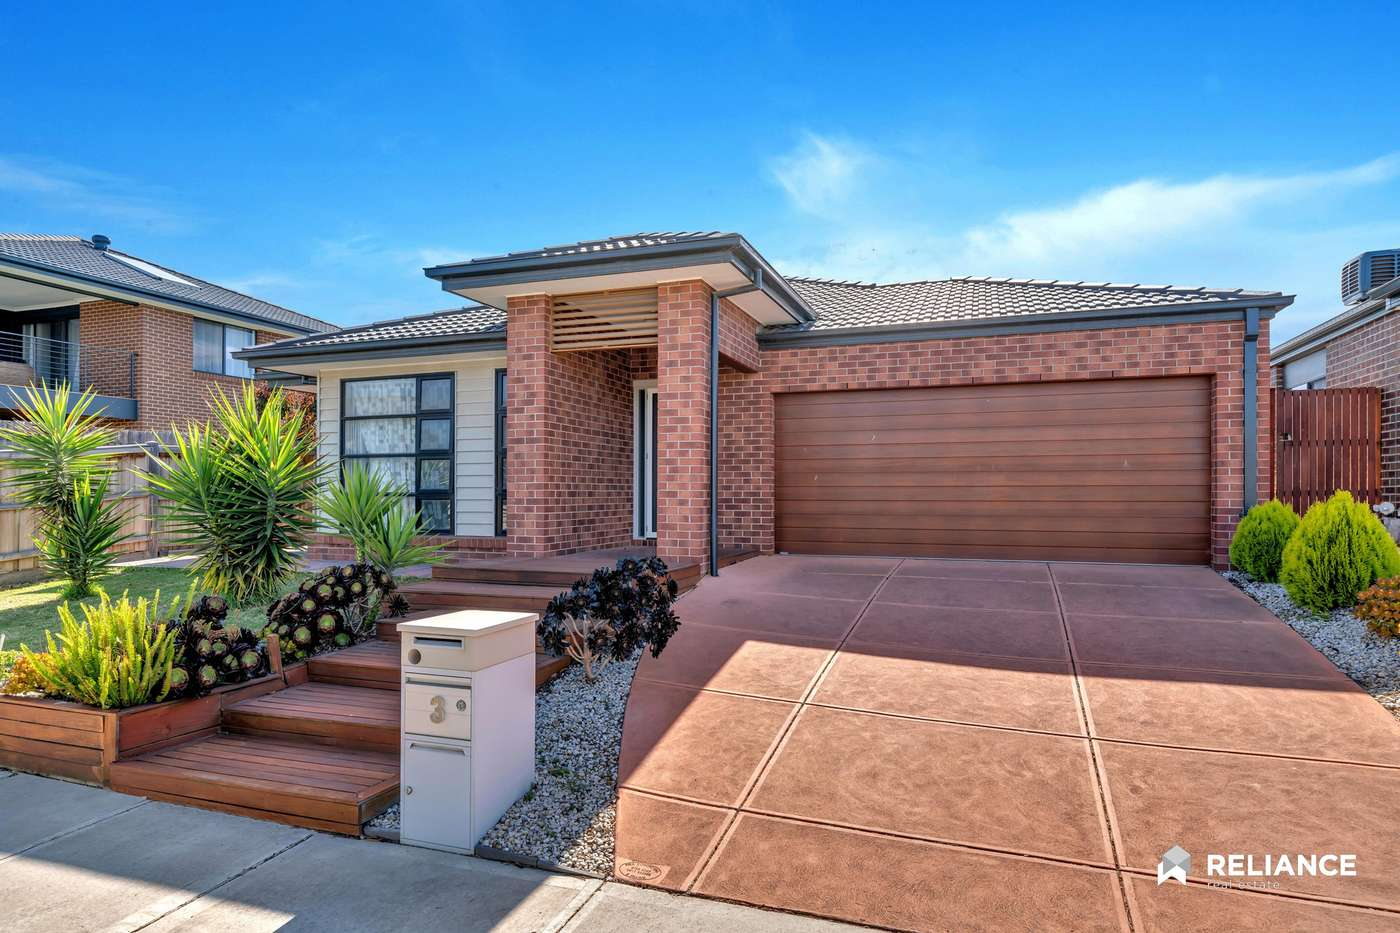 Main view of Homely house listing, 3 Solitude Crescent, Point Cook, VIC 3030